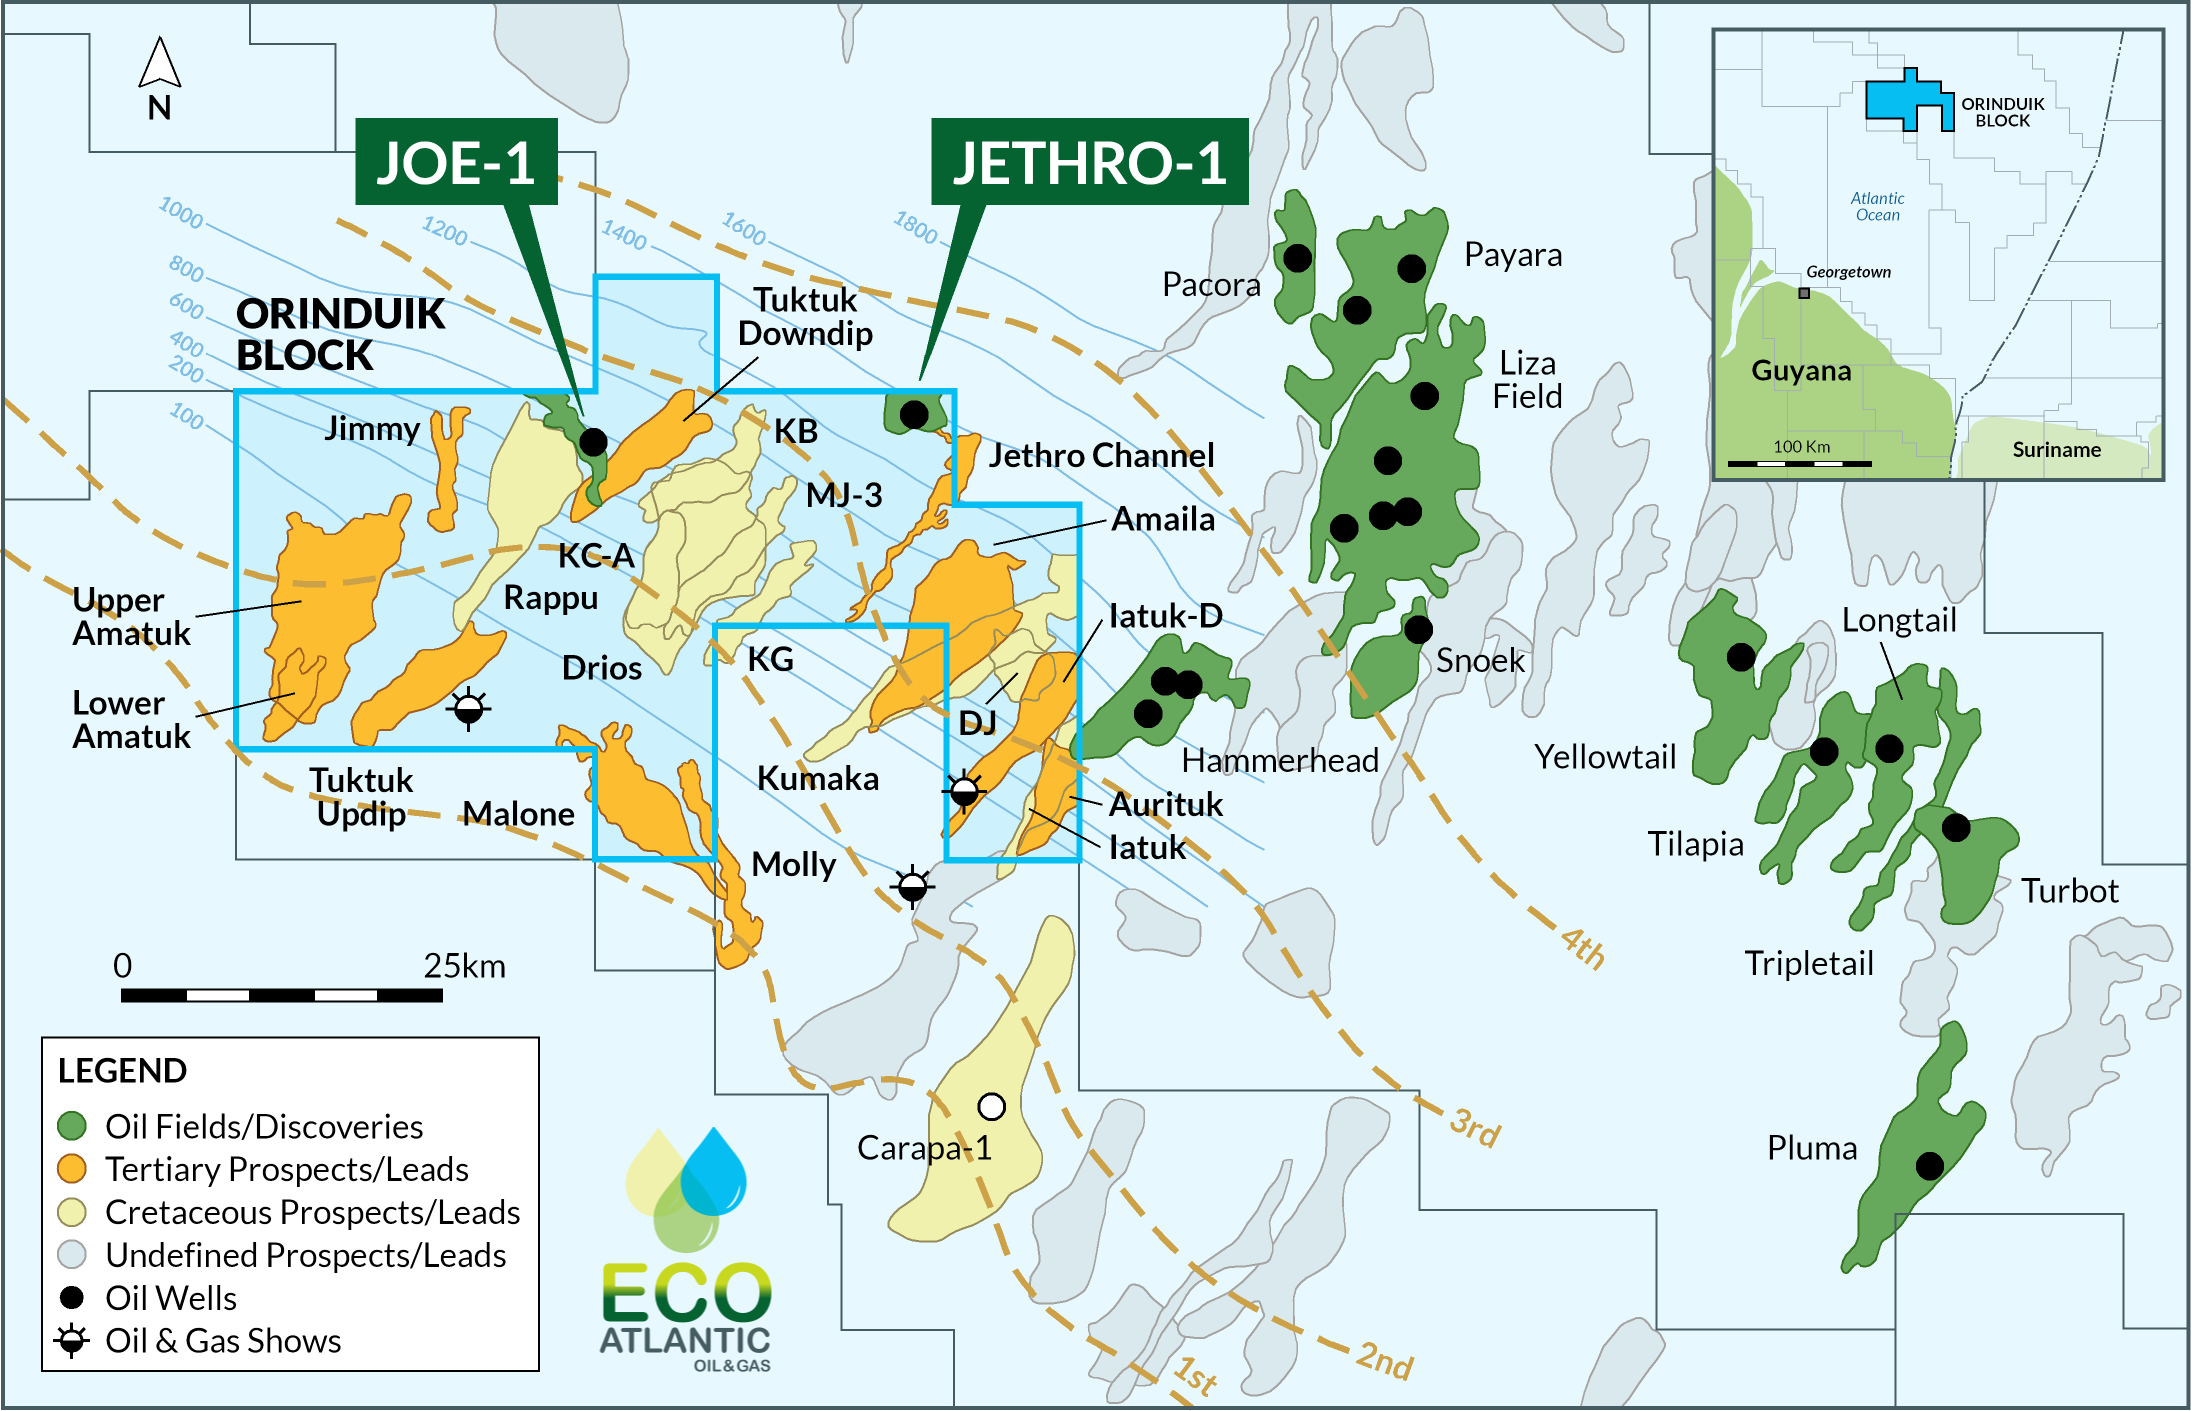 Eco Atlantic reveals major 2020 Orinduik drilling programme to follow up recent discoveries (ECO, TLW)